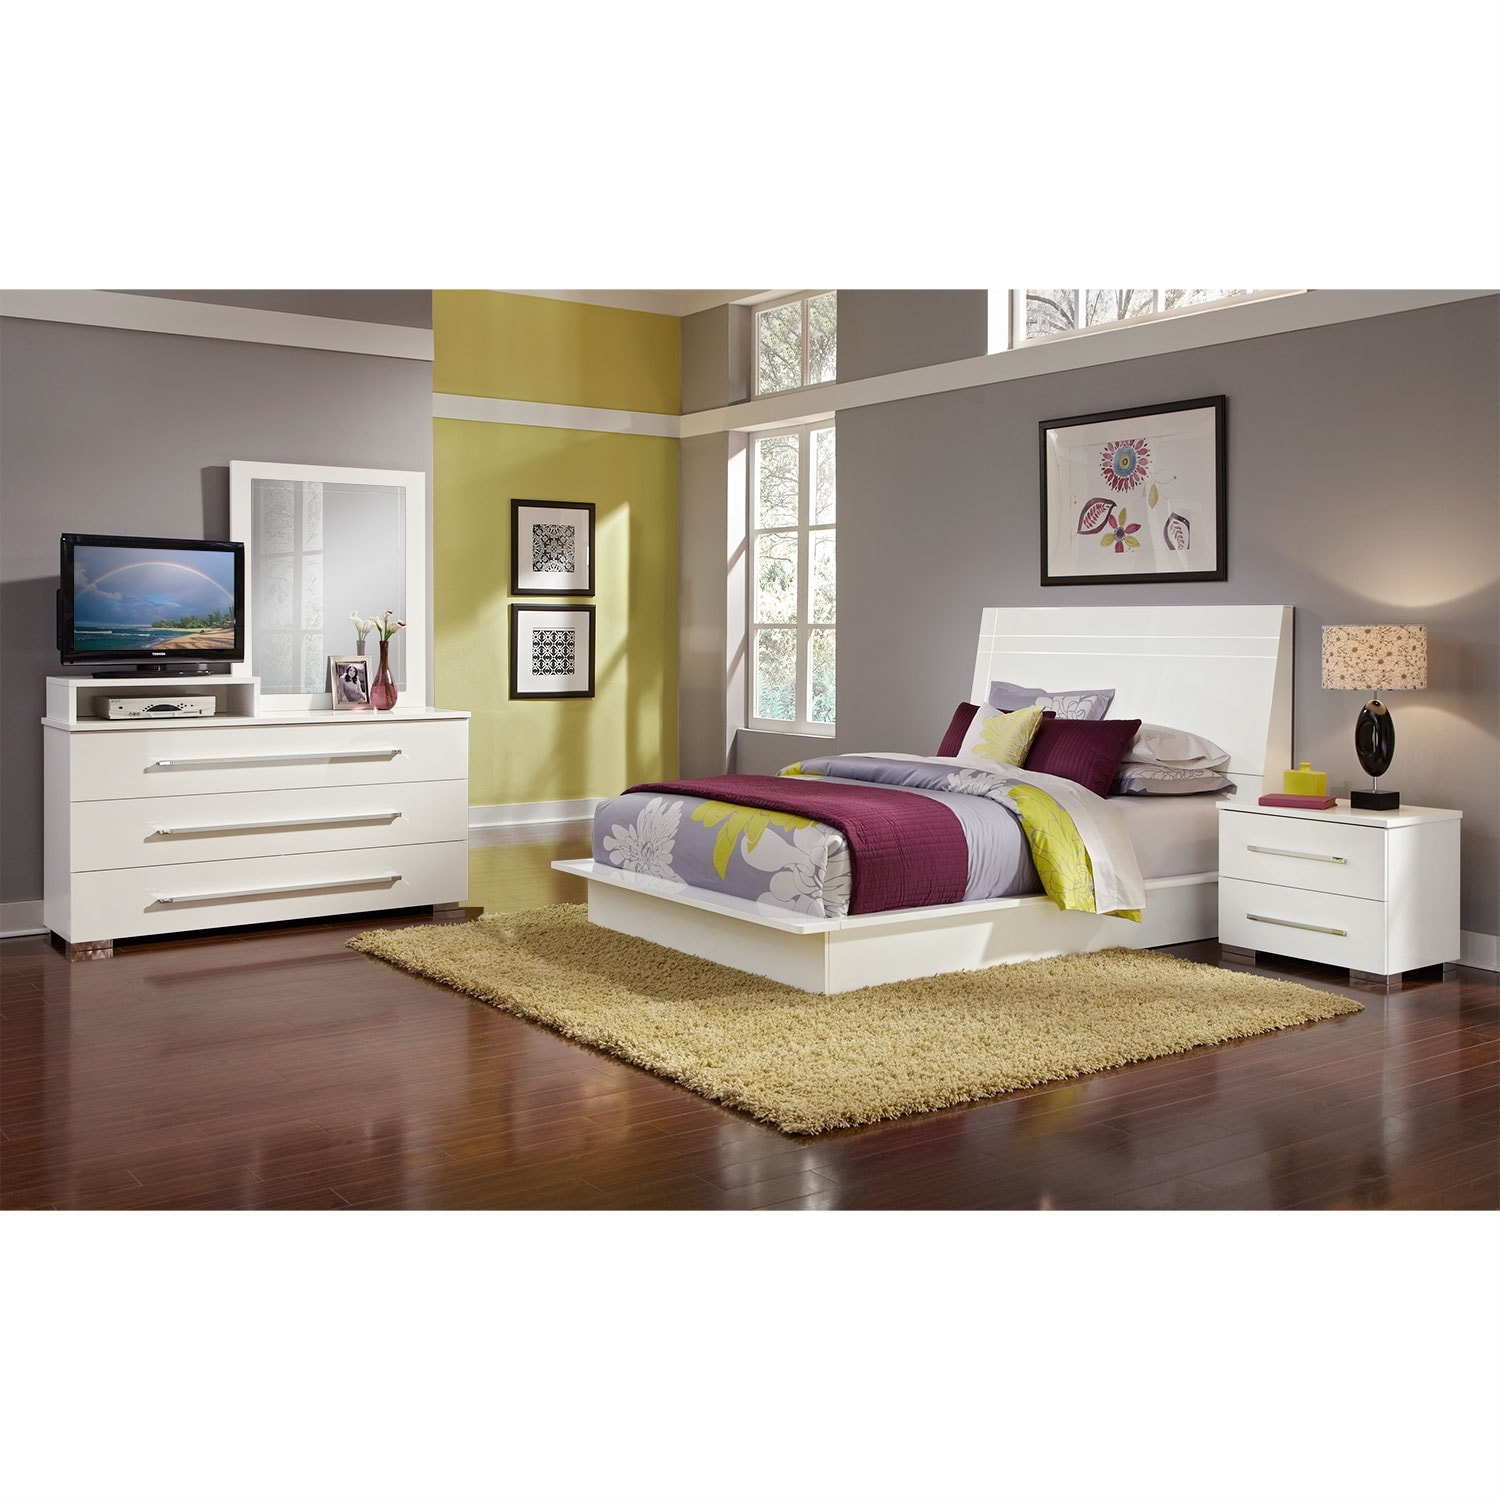 Bedroom Furniture - Dimora 6-Piece King Panel Bedroom Set with Media Dresser- White